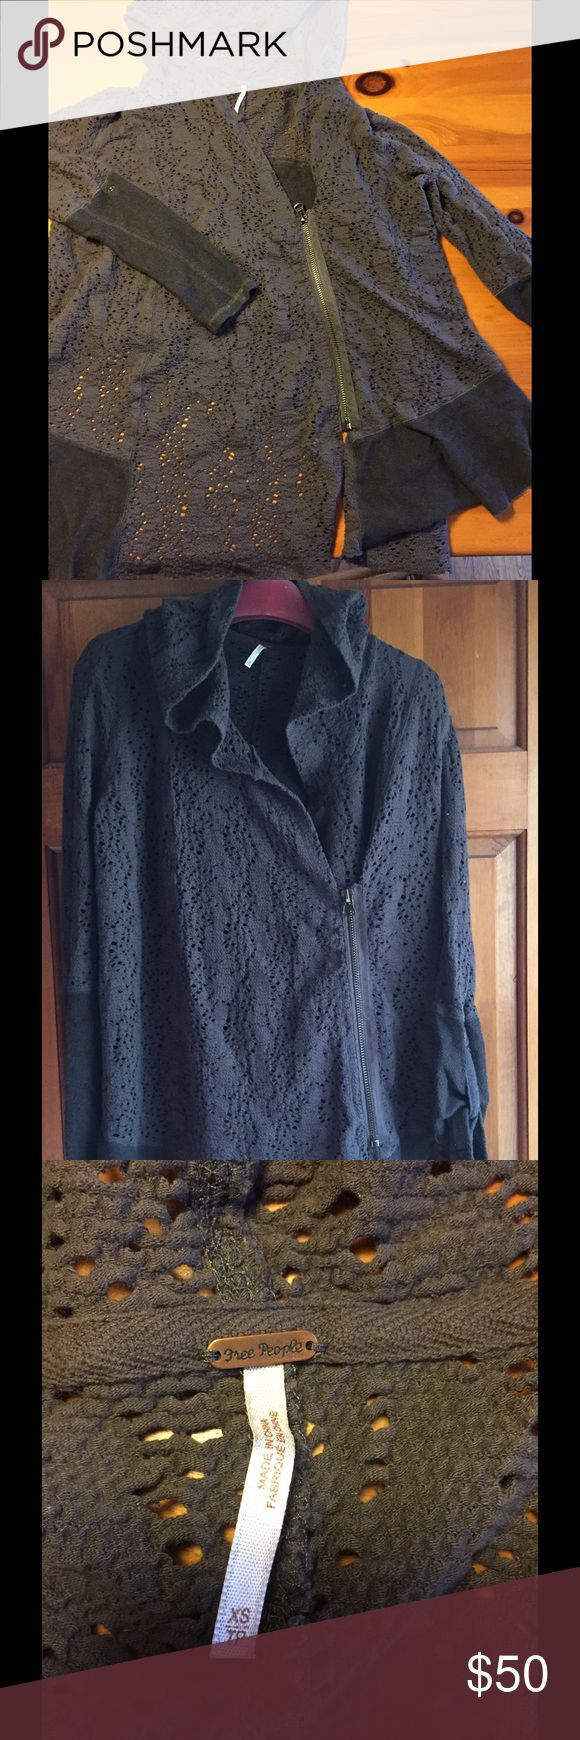 Women's Free people long cardigan Women's Free People long cardigan. Asymmetrical zip with hood. Lace crochet detail with optional button up sleeves. Worn once! Free People Sweaters Cardigans